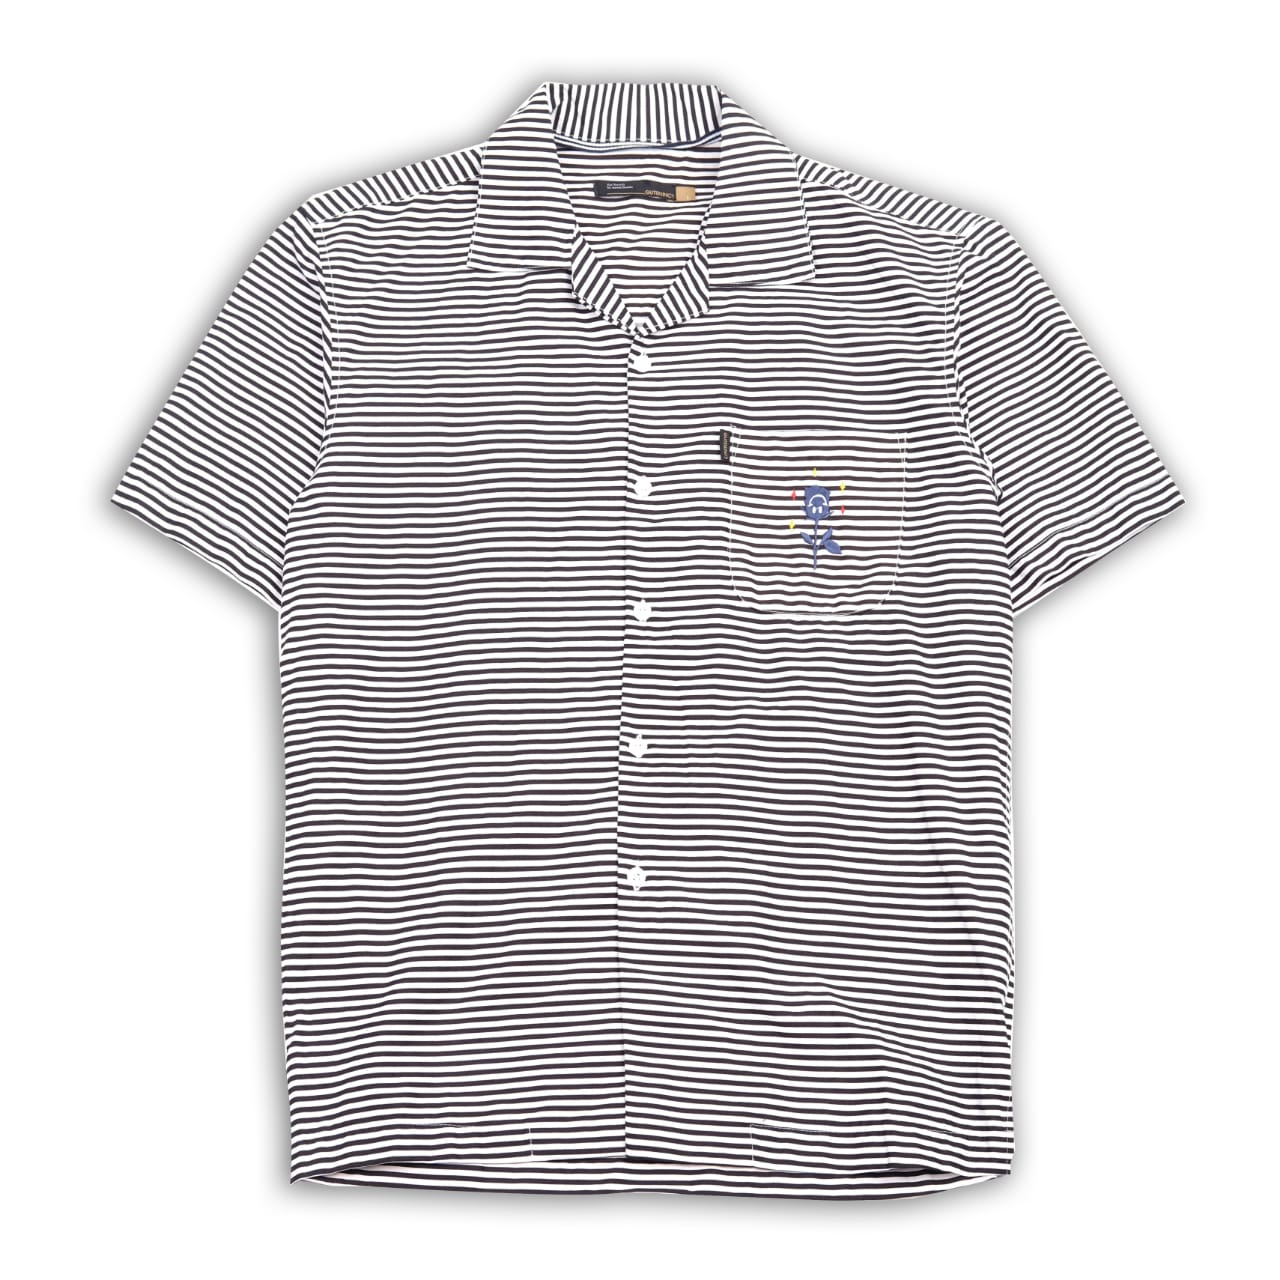 Gustav Camp Colar Black Stripes Shirt